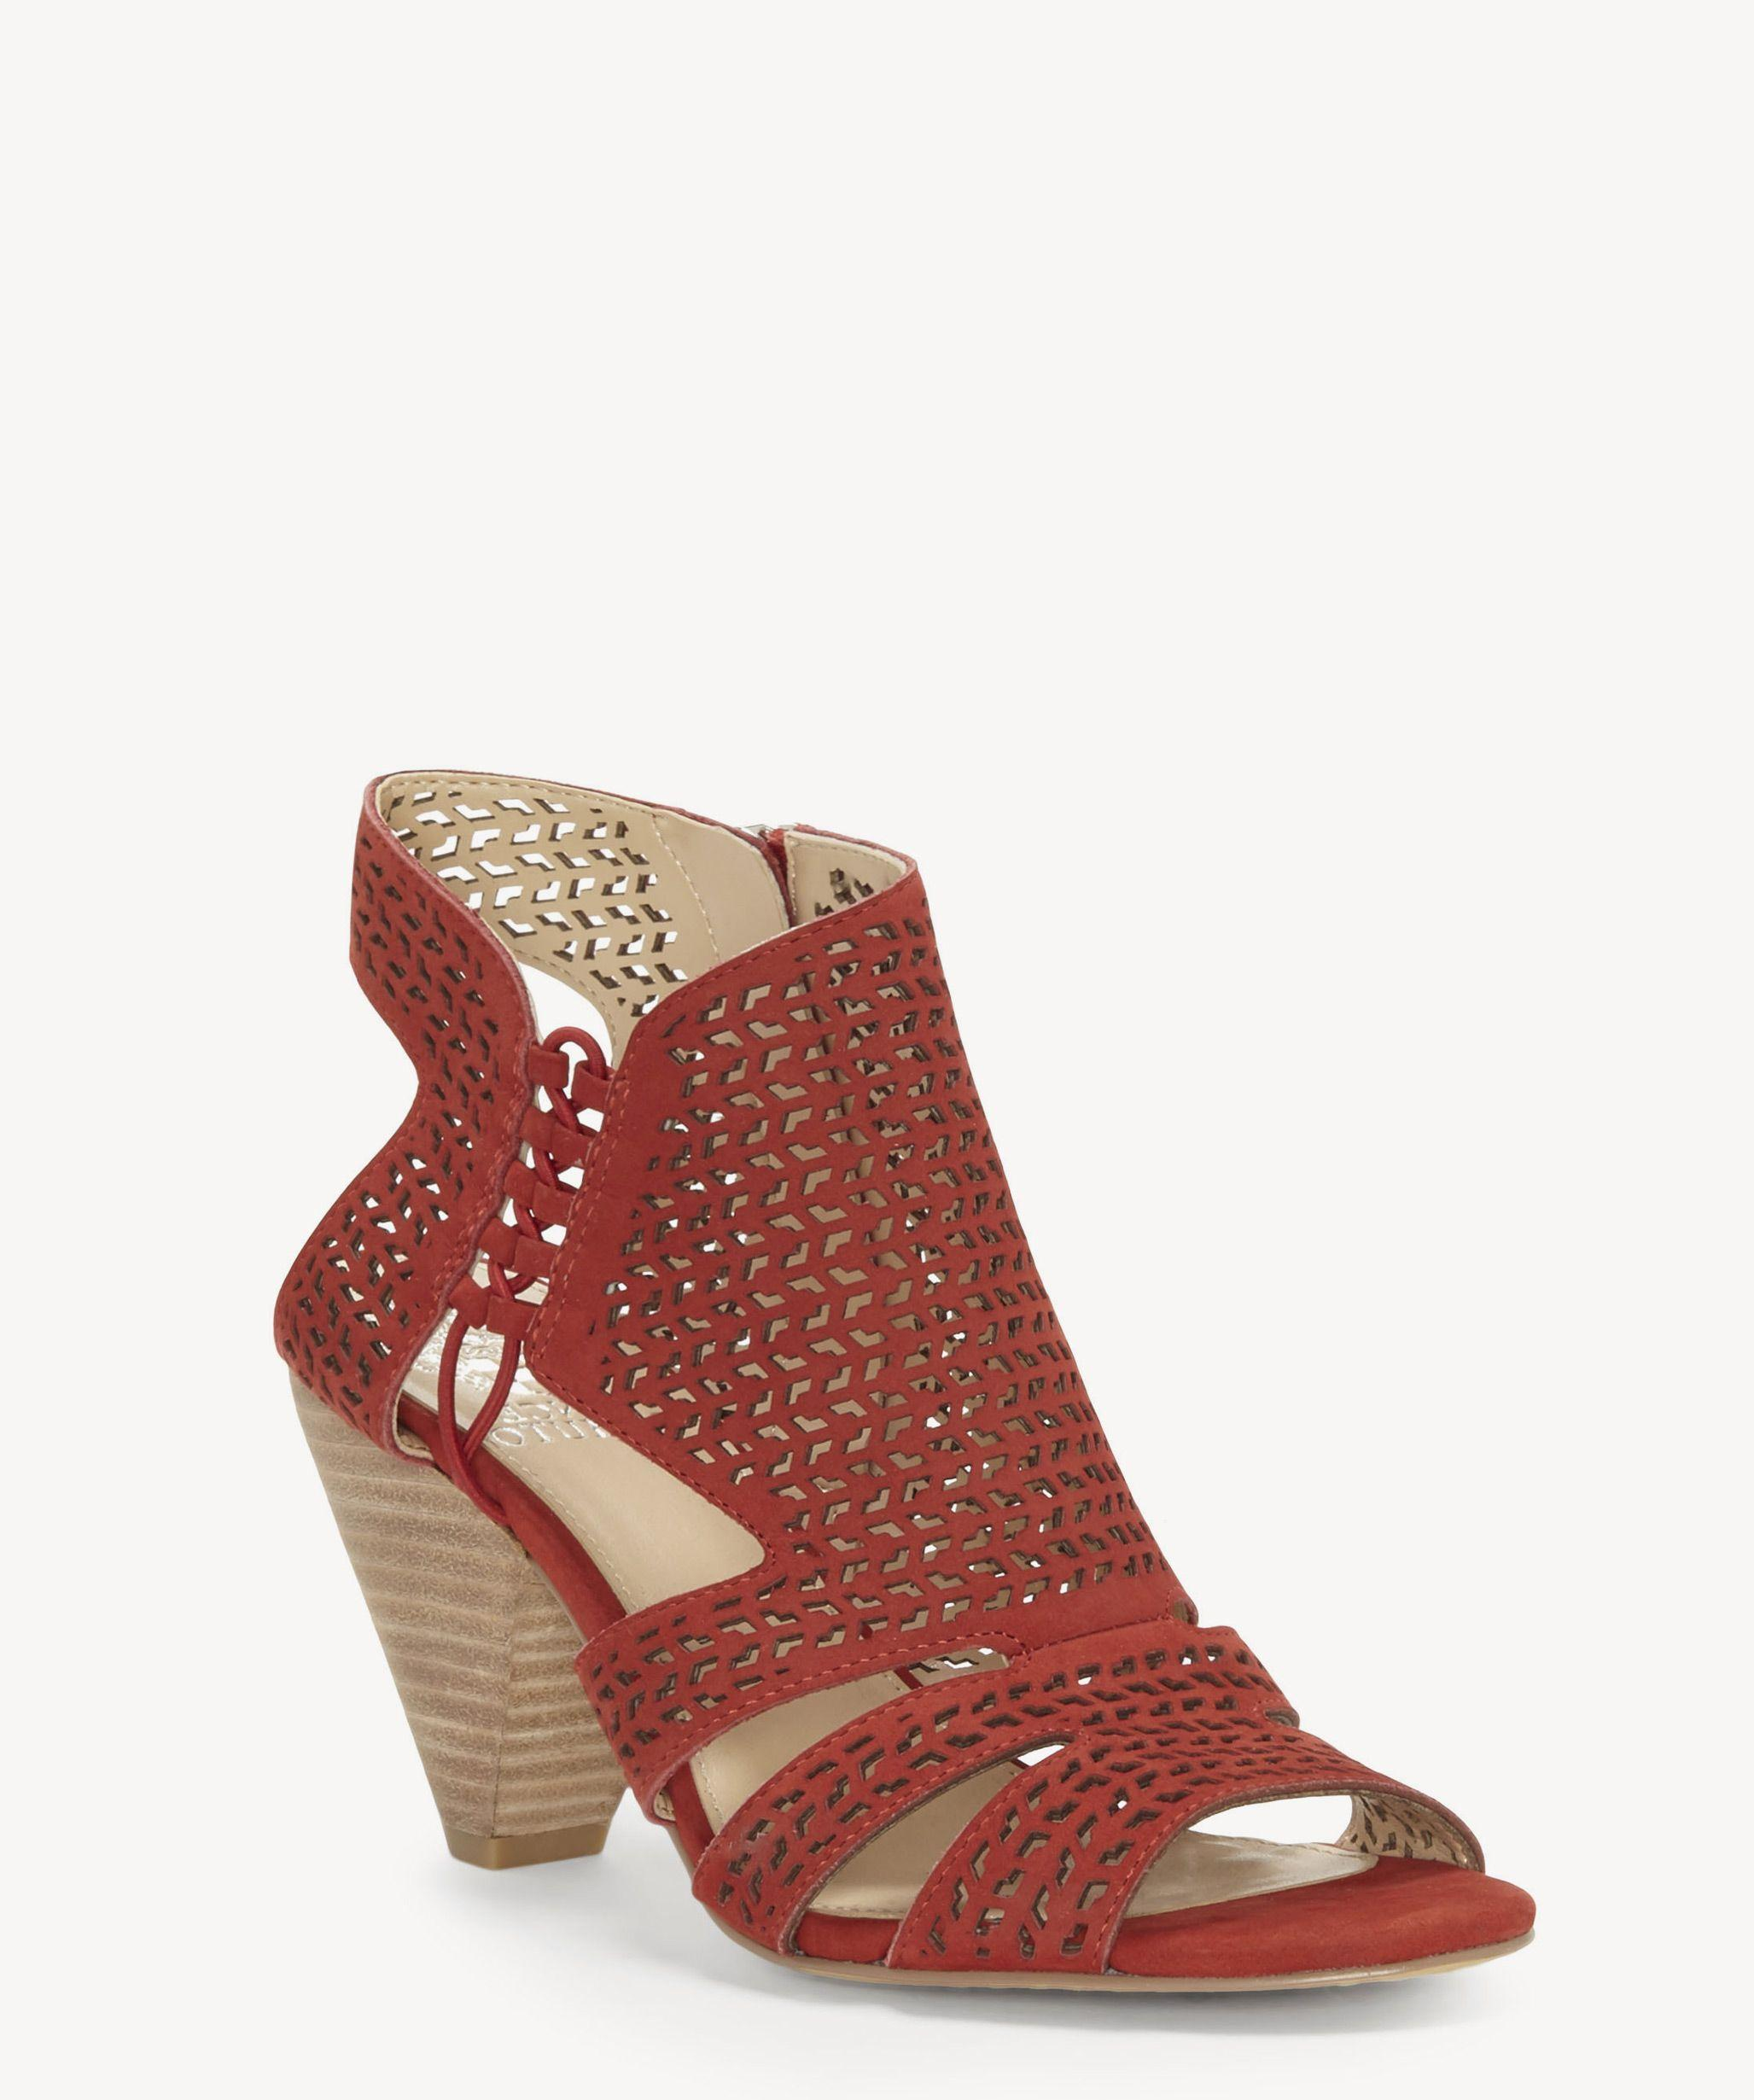 f6c26bd21e9 Lyst - Vince Camuto Esten Cone Heel Sandal in Red - Save 51%